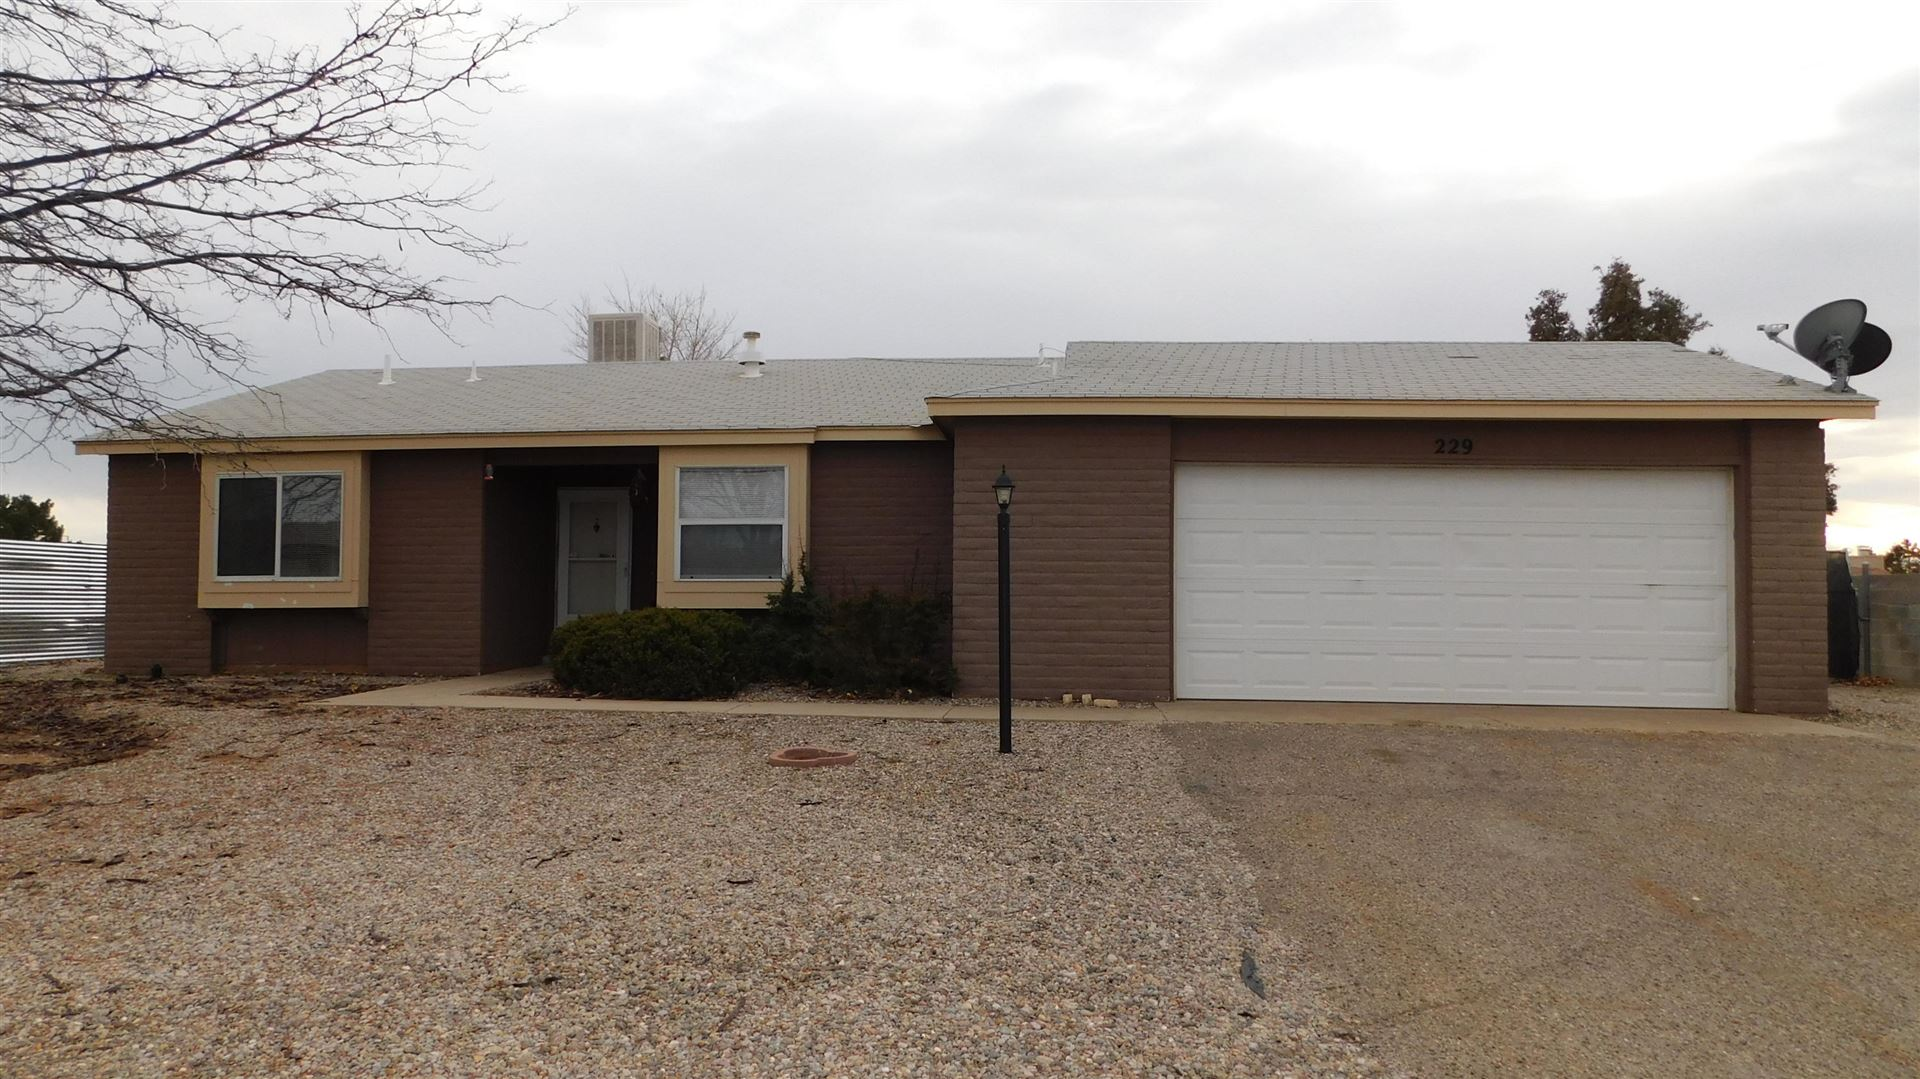 Photo of 229 SOMMERSET Drive SE, Rio Rancho, NM 87124 (MLS # 984134)